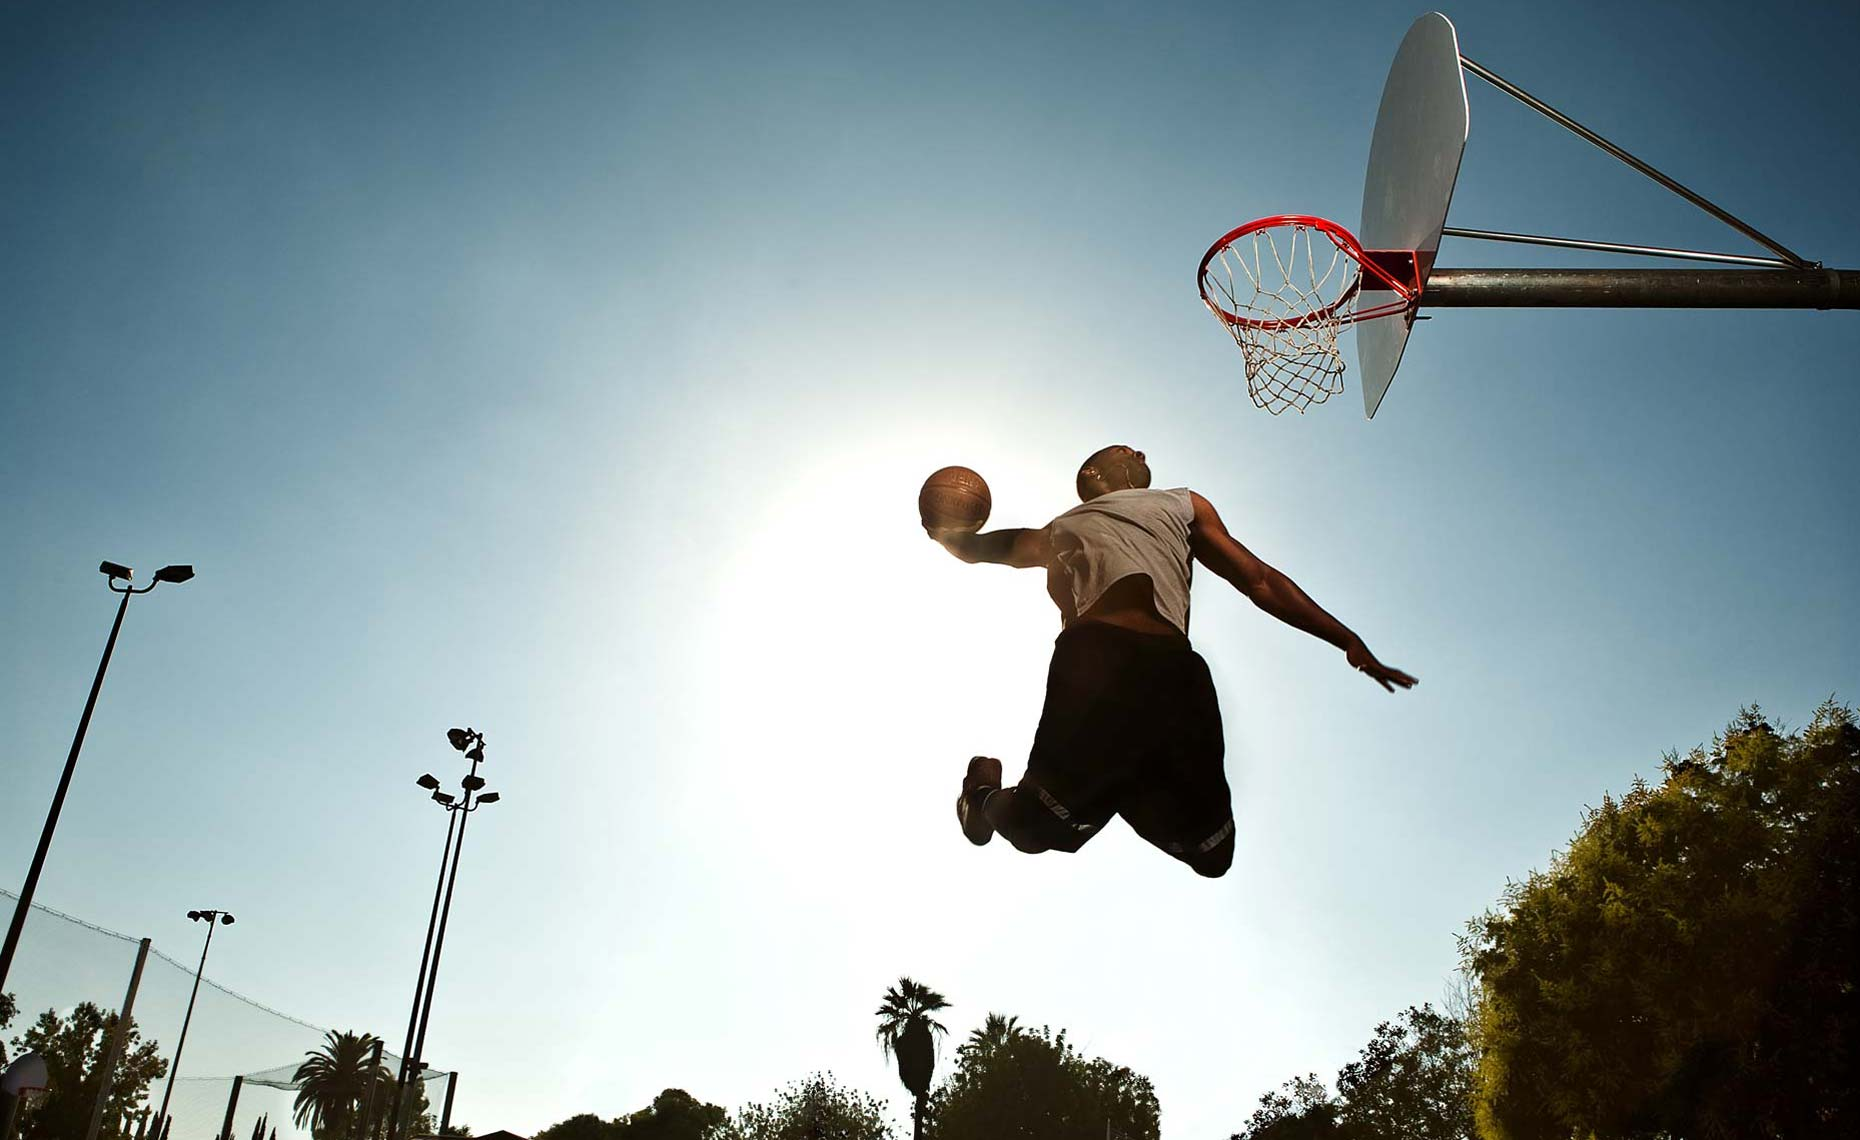 BasketballDunking